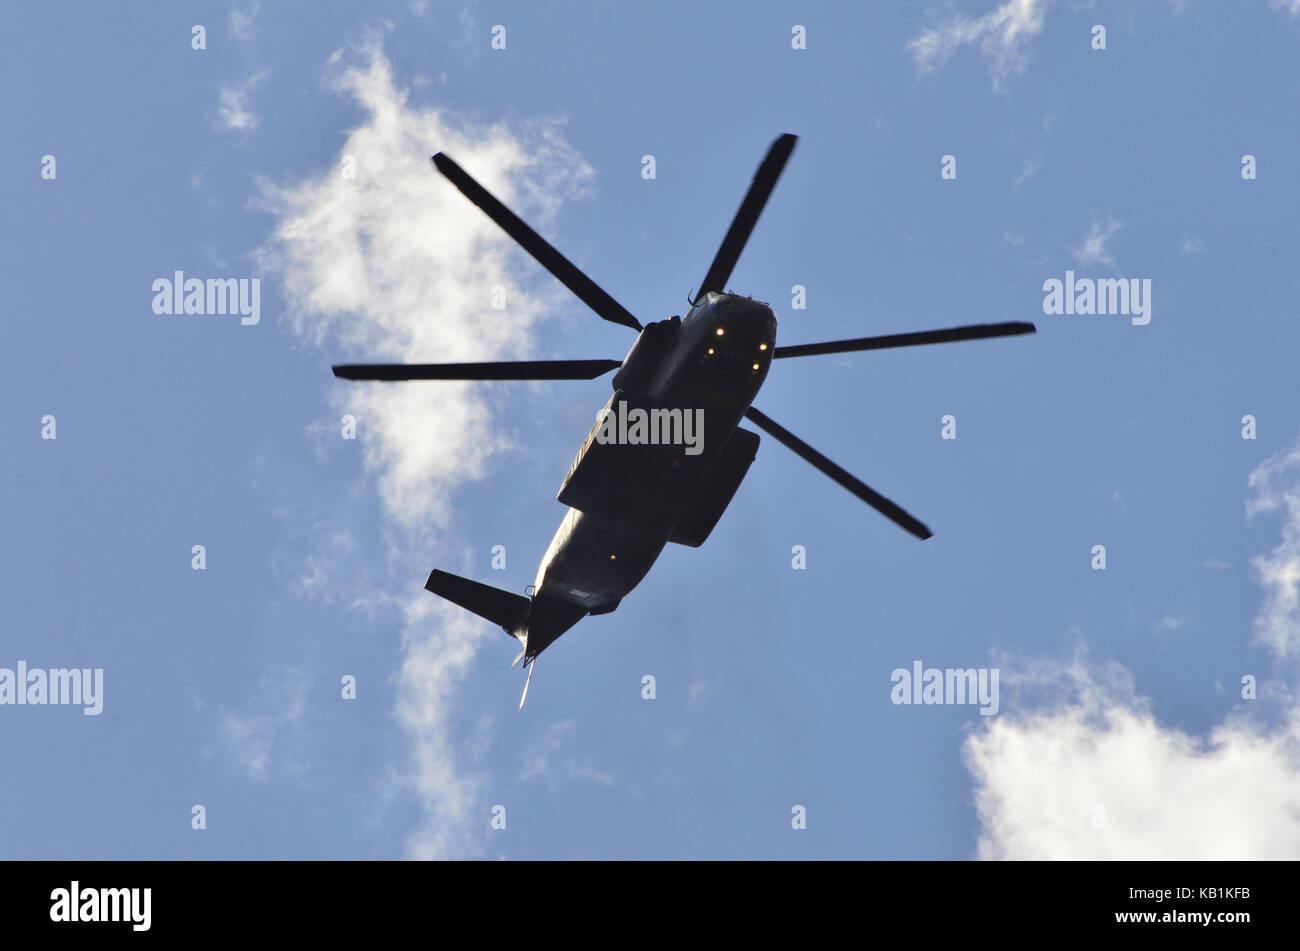 Germany, Berlin, ILA 2012, air display, military helicopter, - Stock Image